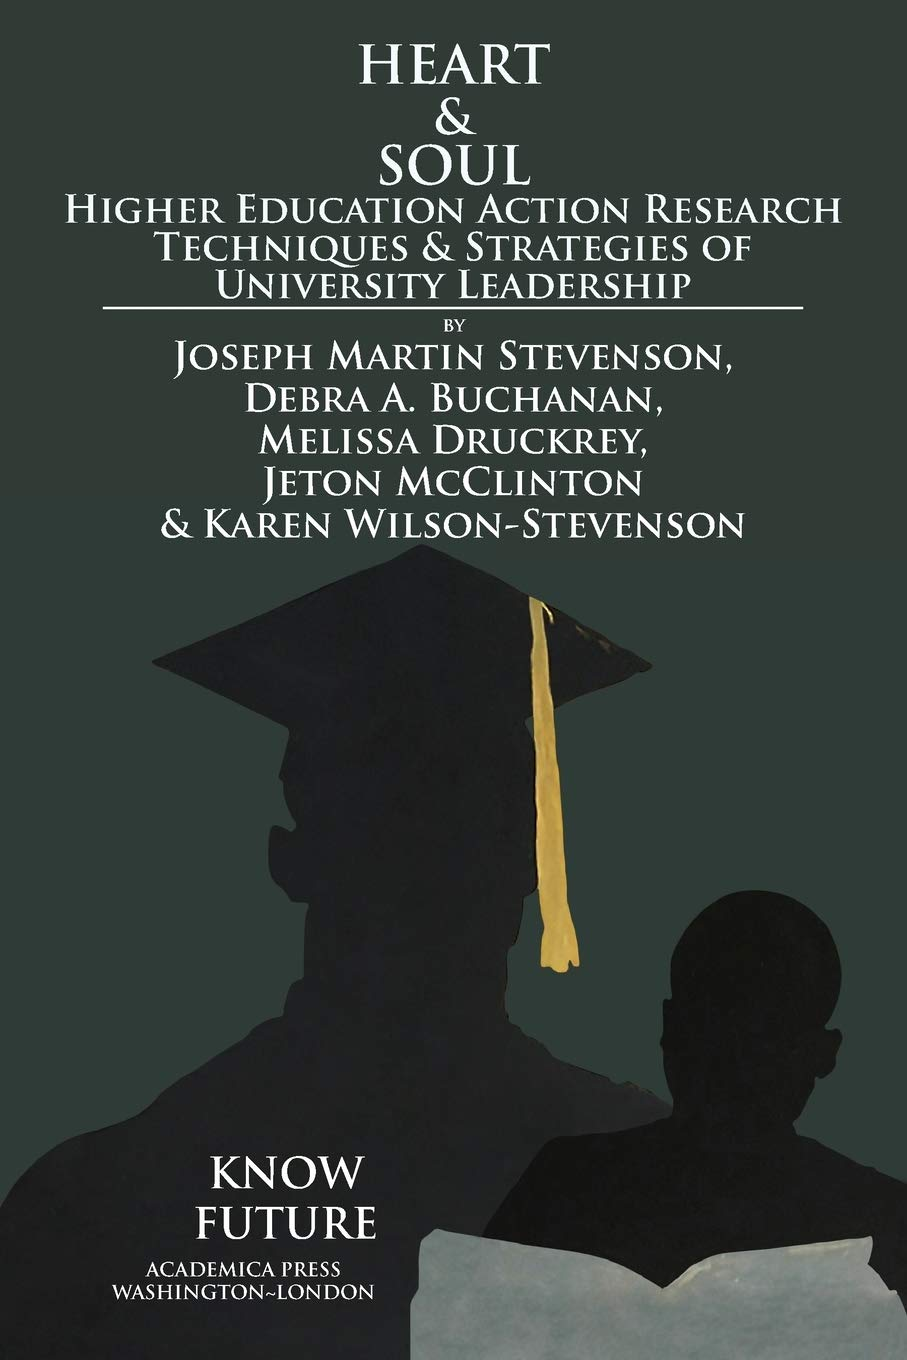 Heart and soul: higher education action research techniques and strategies of university leadership